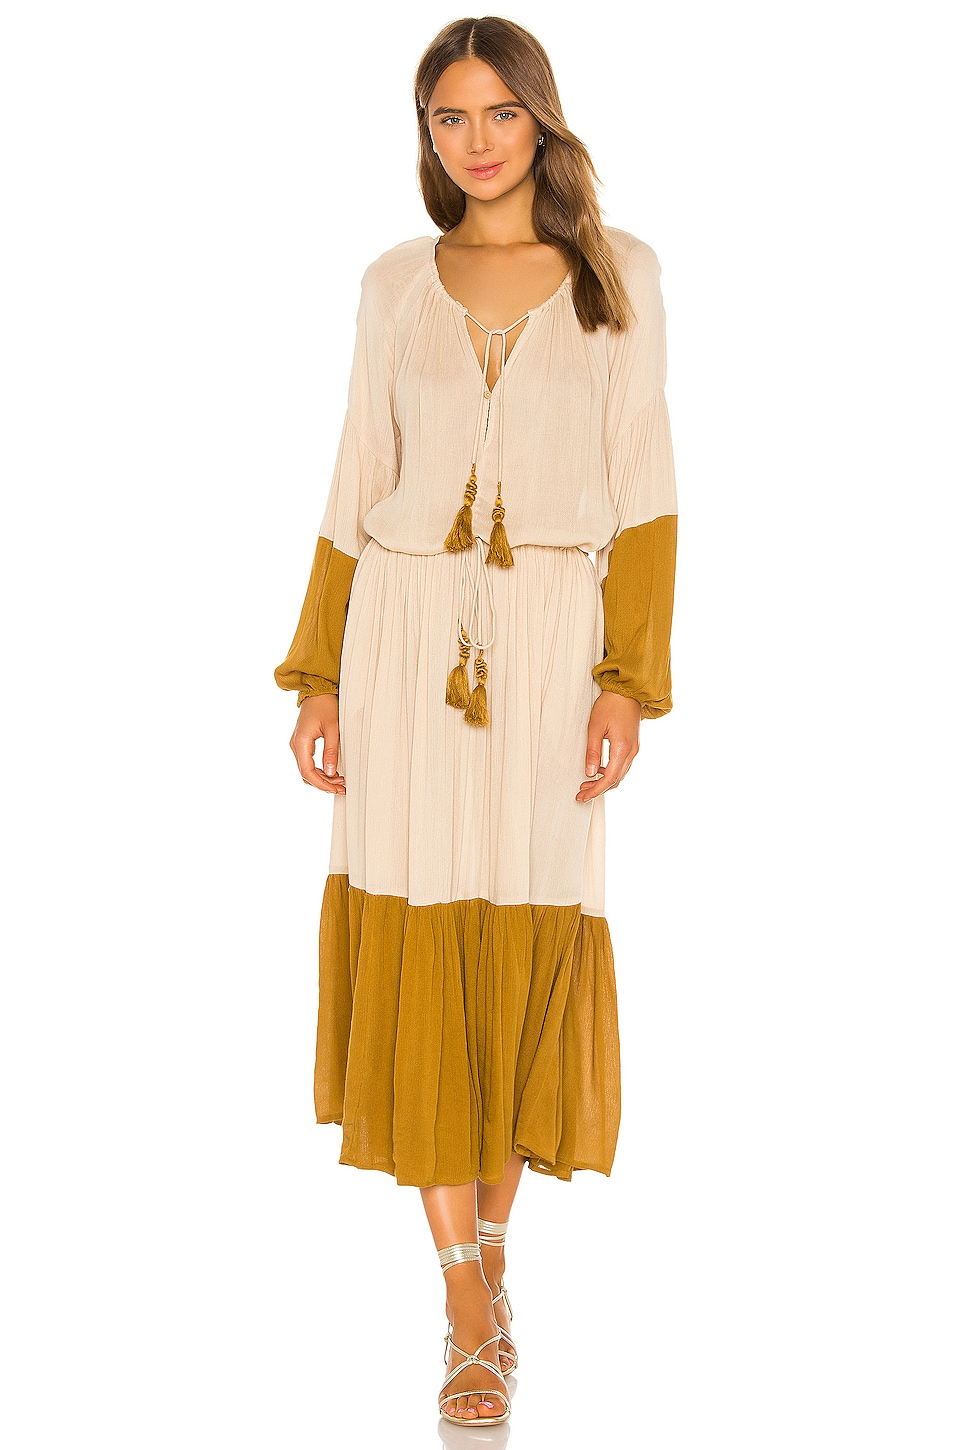 Free People Never Forget Midi Dress in Neutral